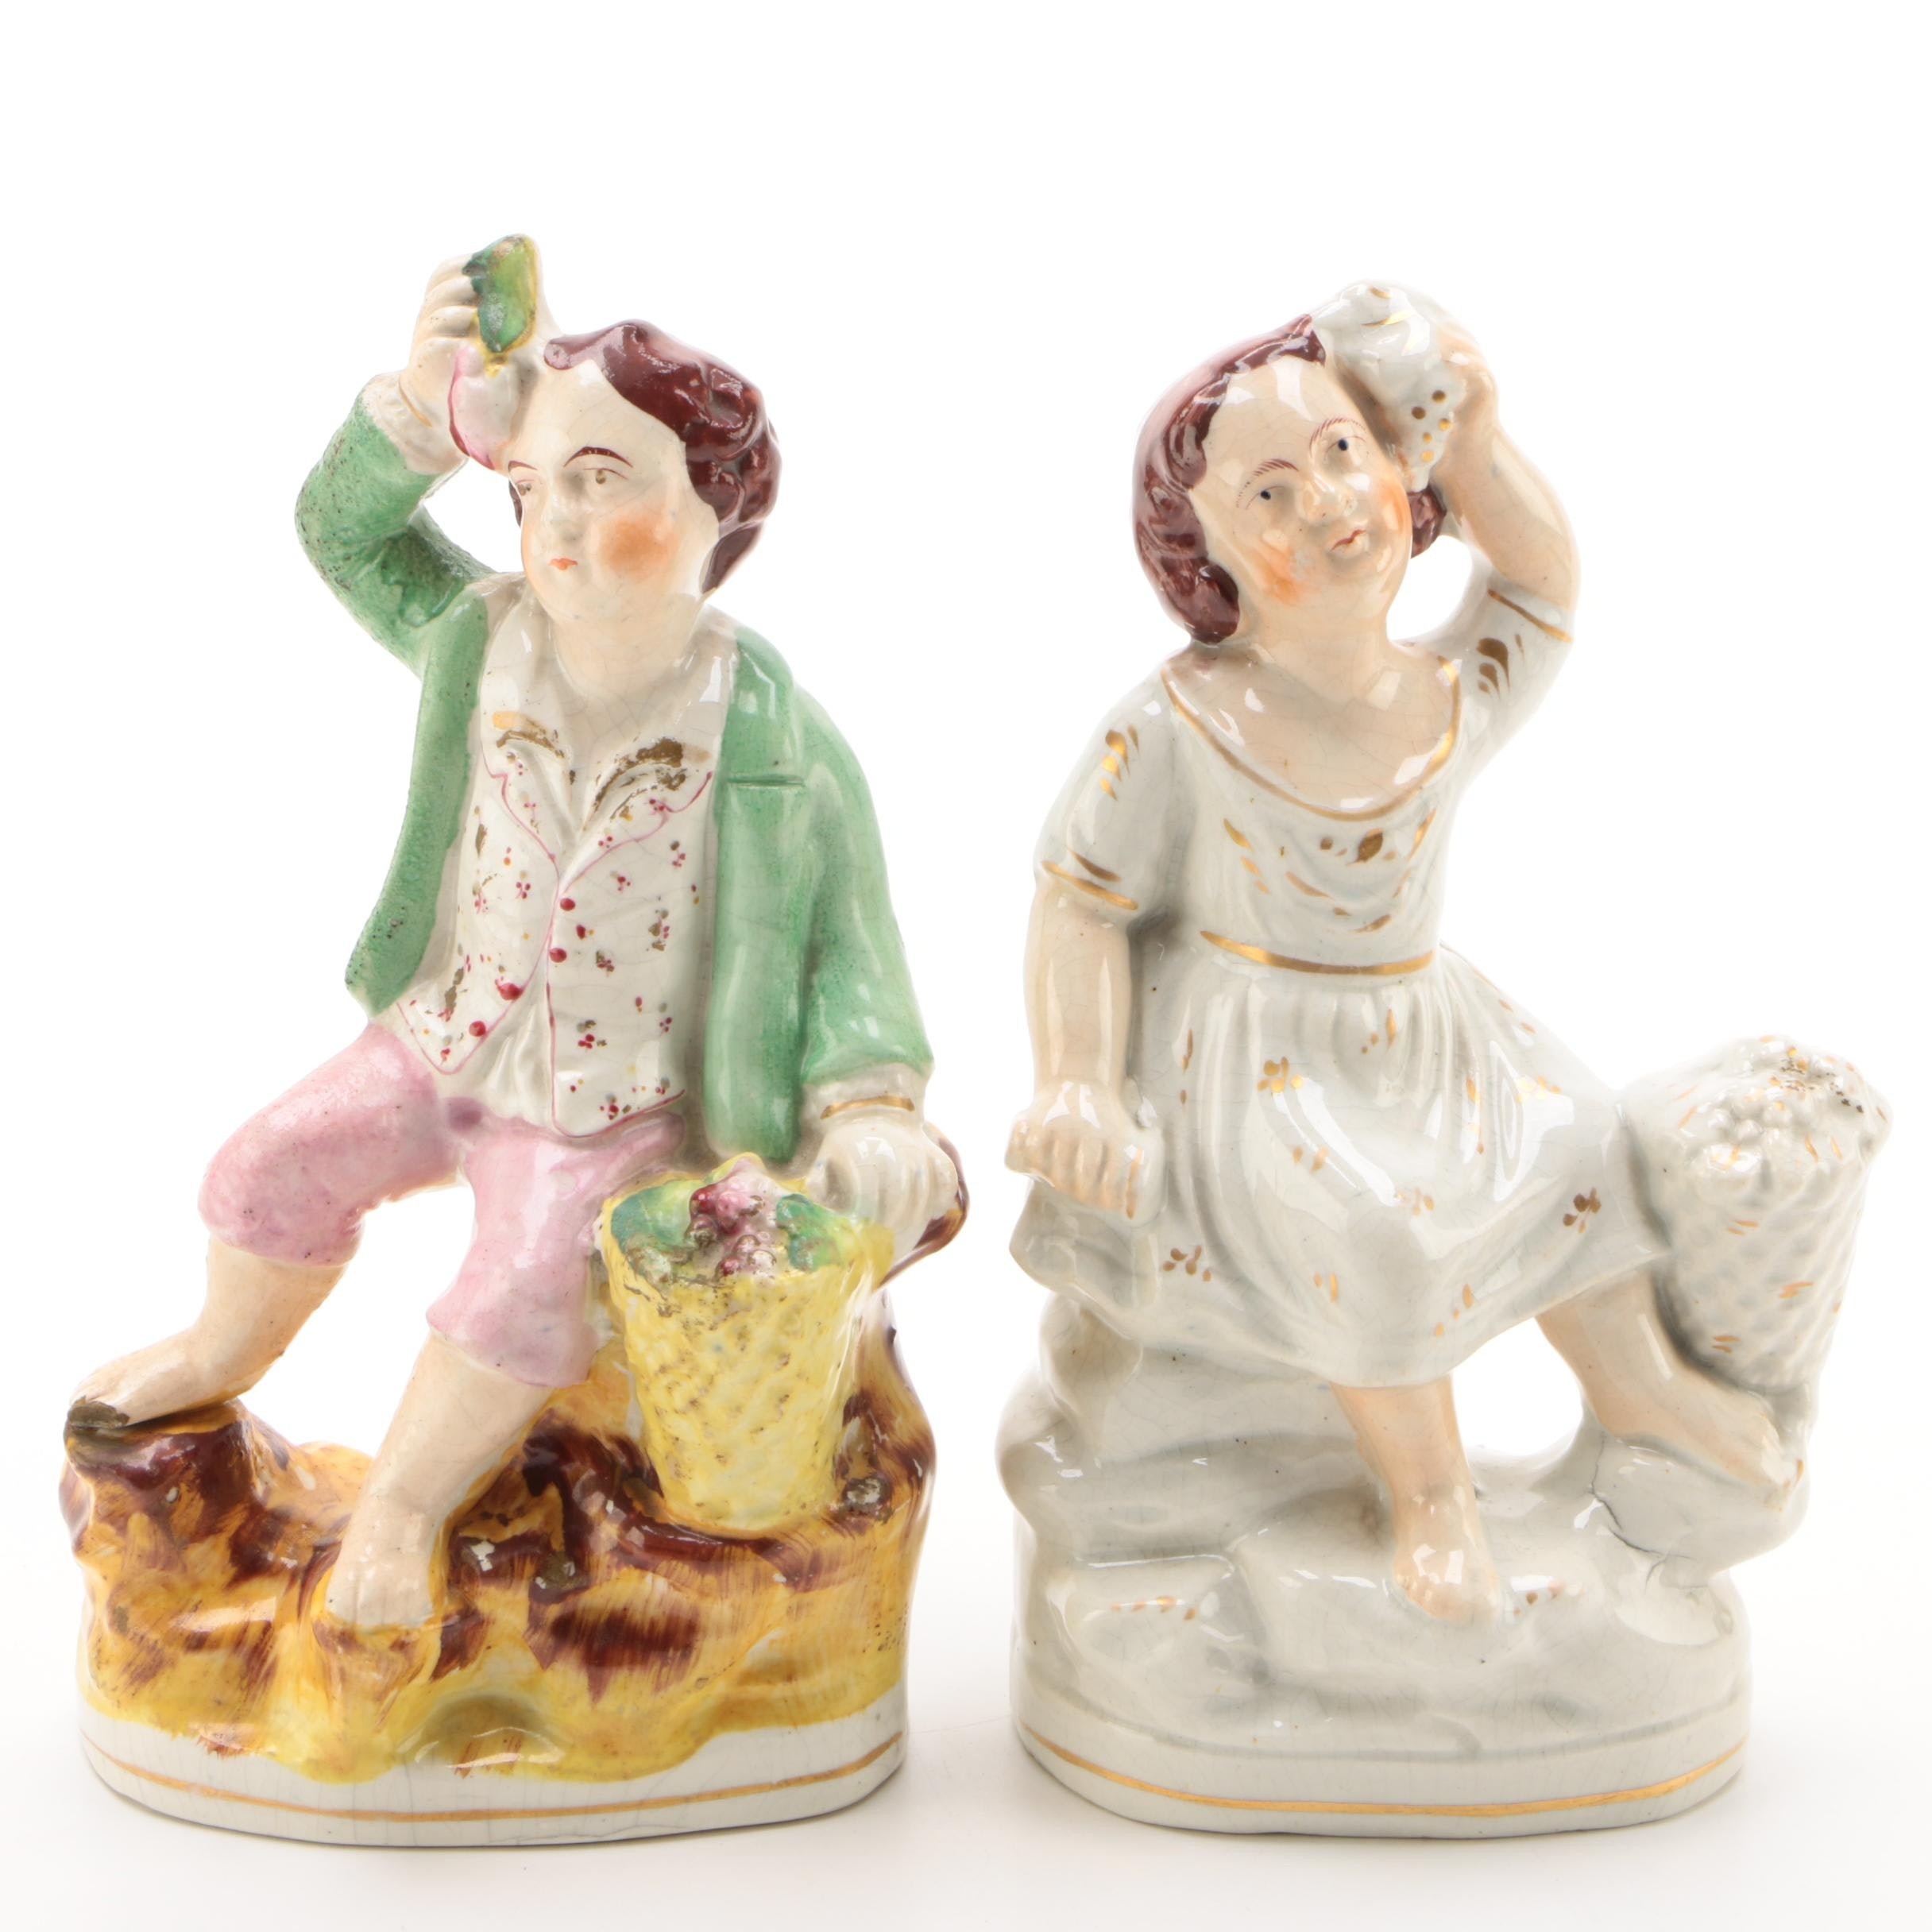 Staffordshire Ceramic Figurines of Boy and Girl, Mid/Late 19th Century